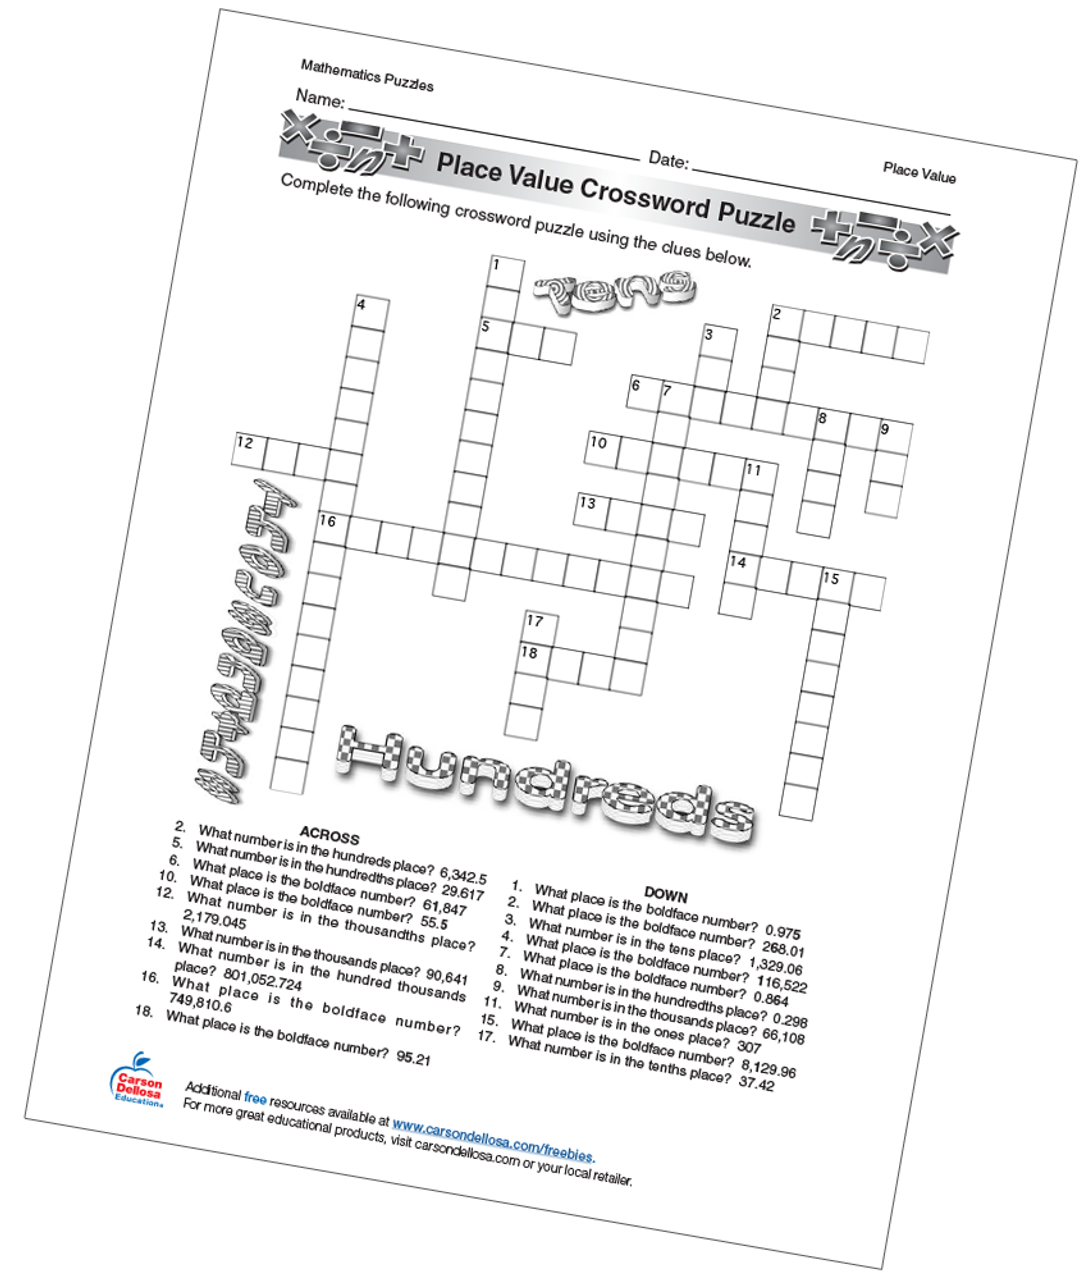 photo about Summer Crossword Puzzle Printable named Level Price tag Crossword Puzzle Totally free Printable - Carson Dellosa